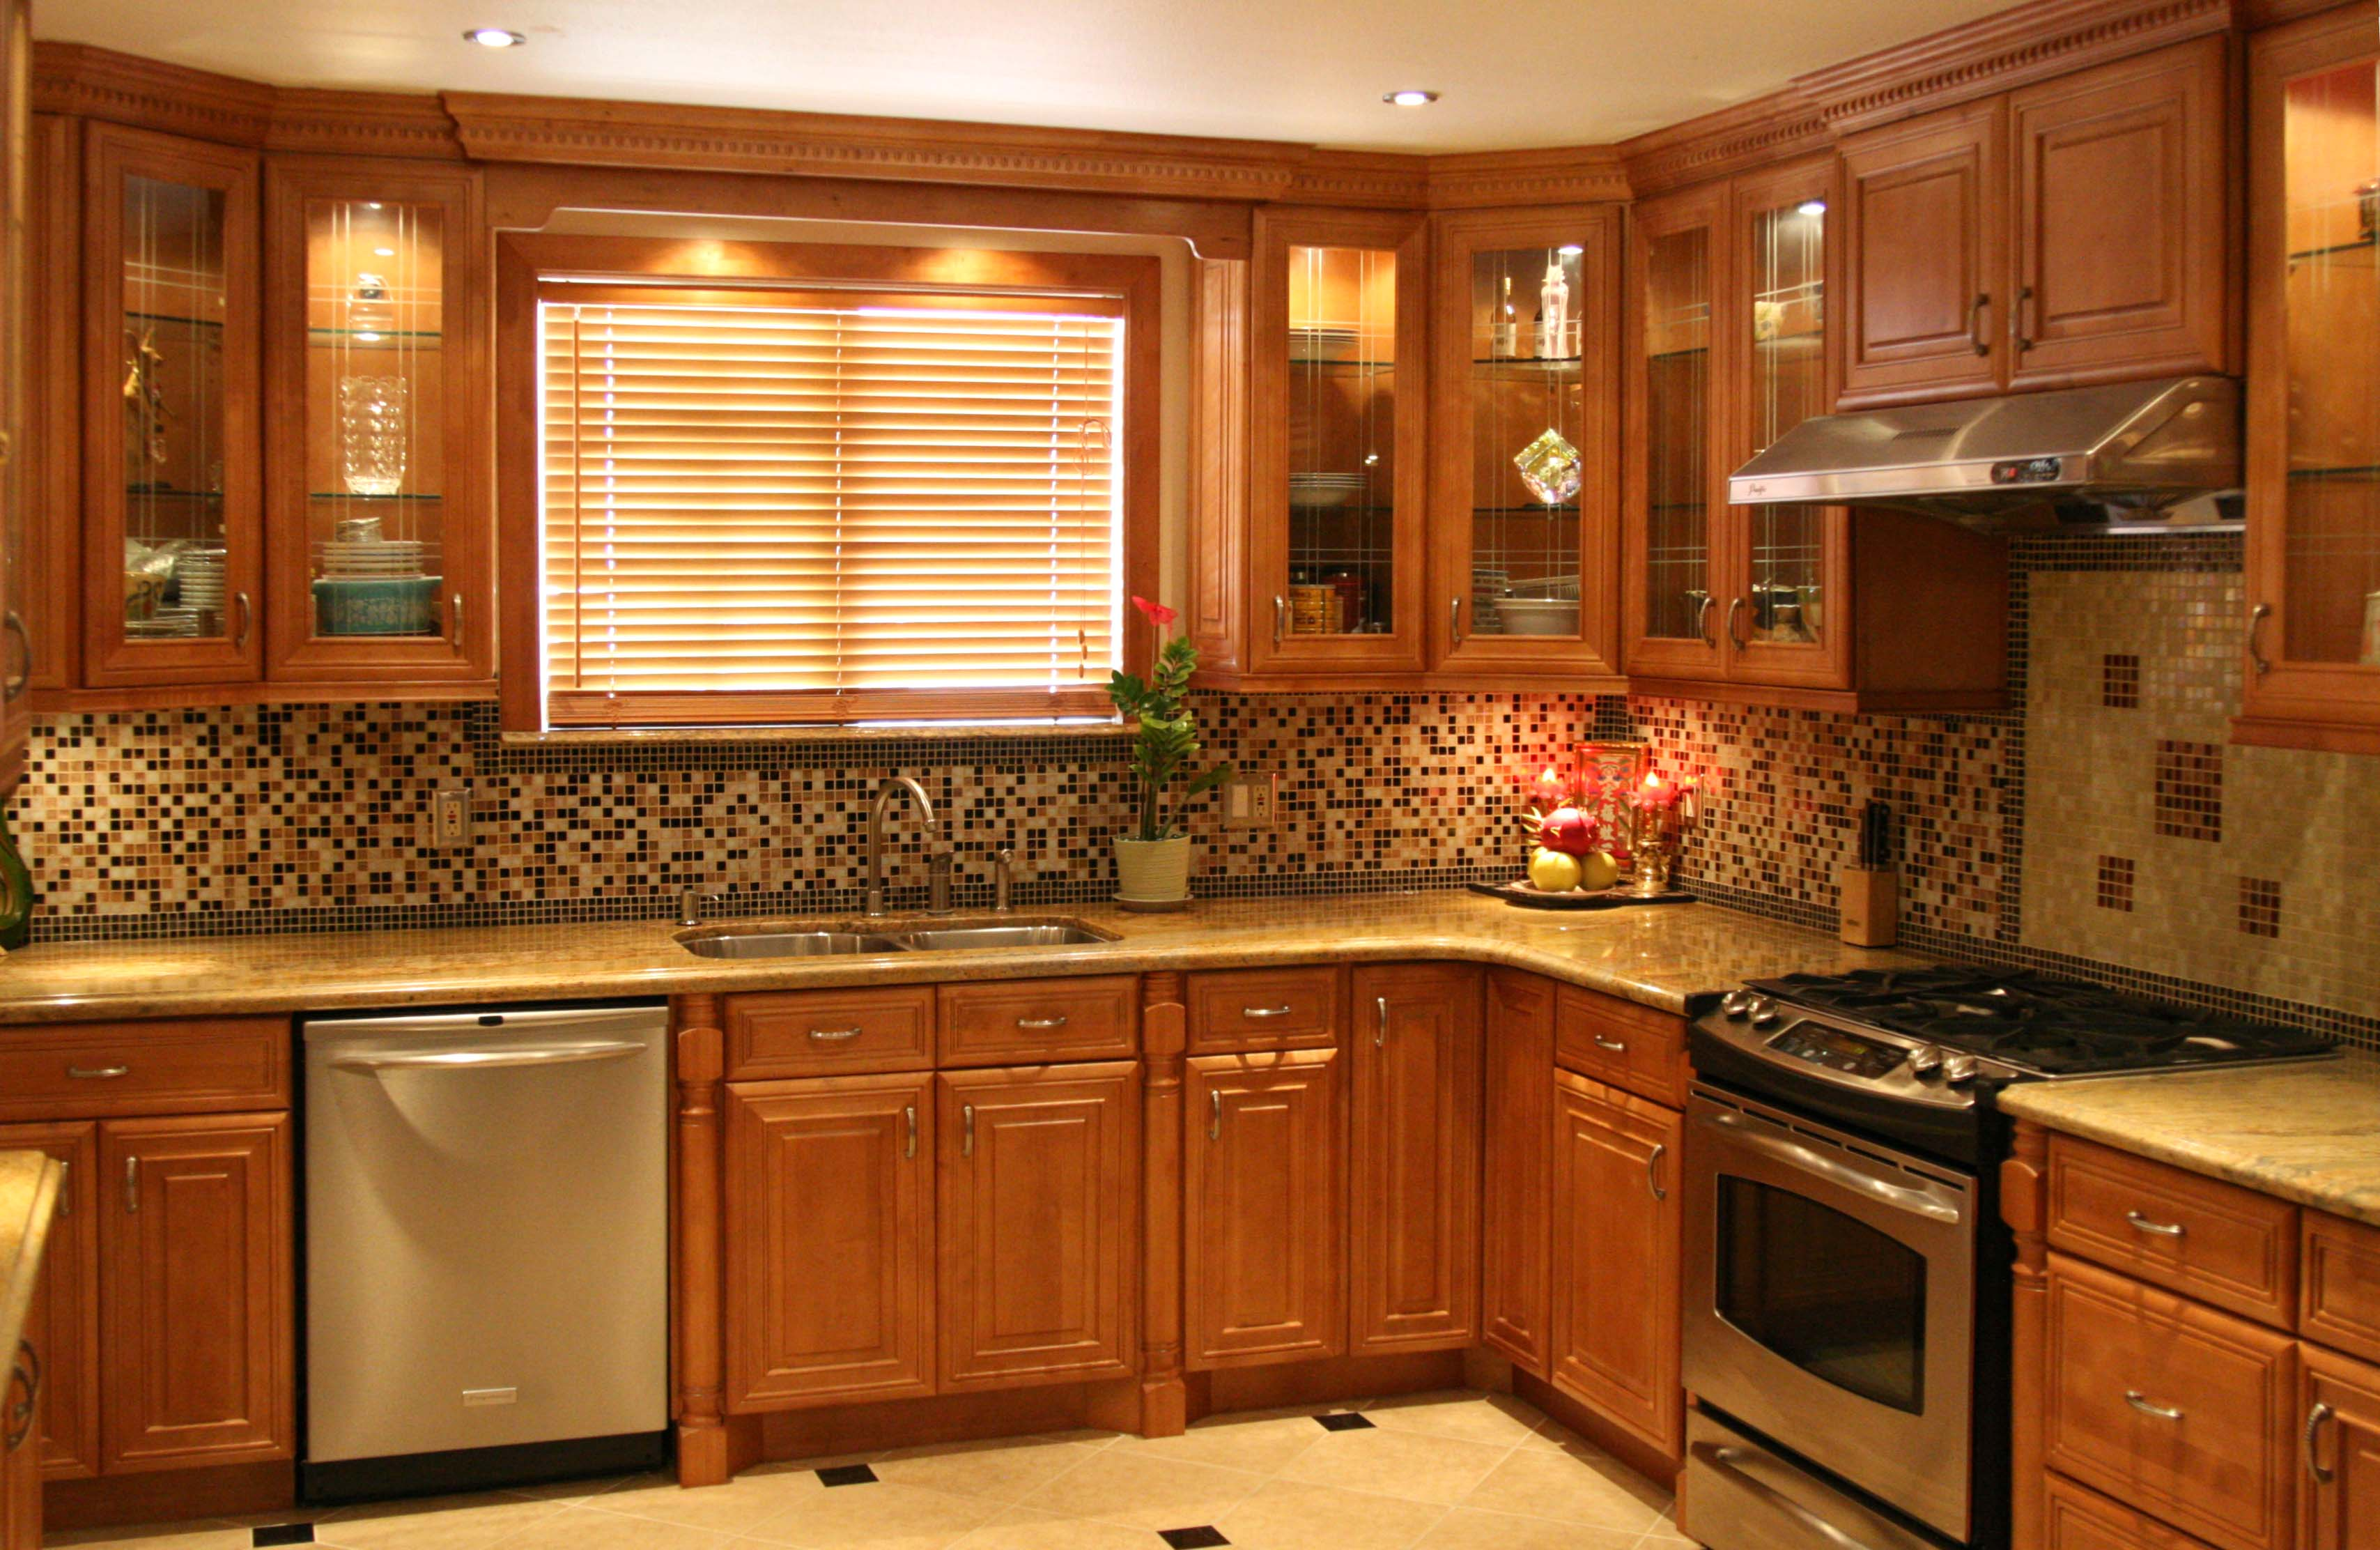 Solid Wood Vs Laminate Kitchen Cabinets Cabinetry Stone Depot